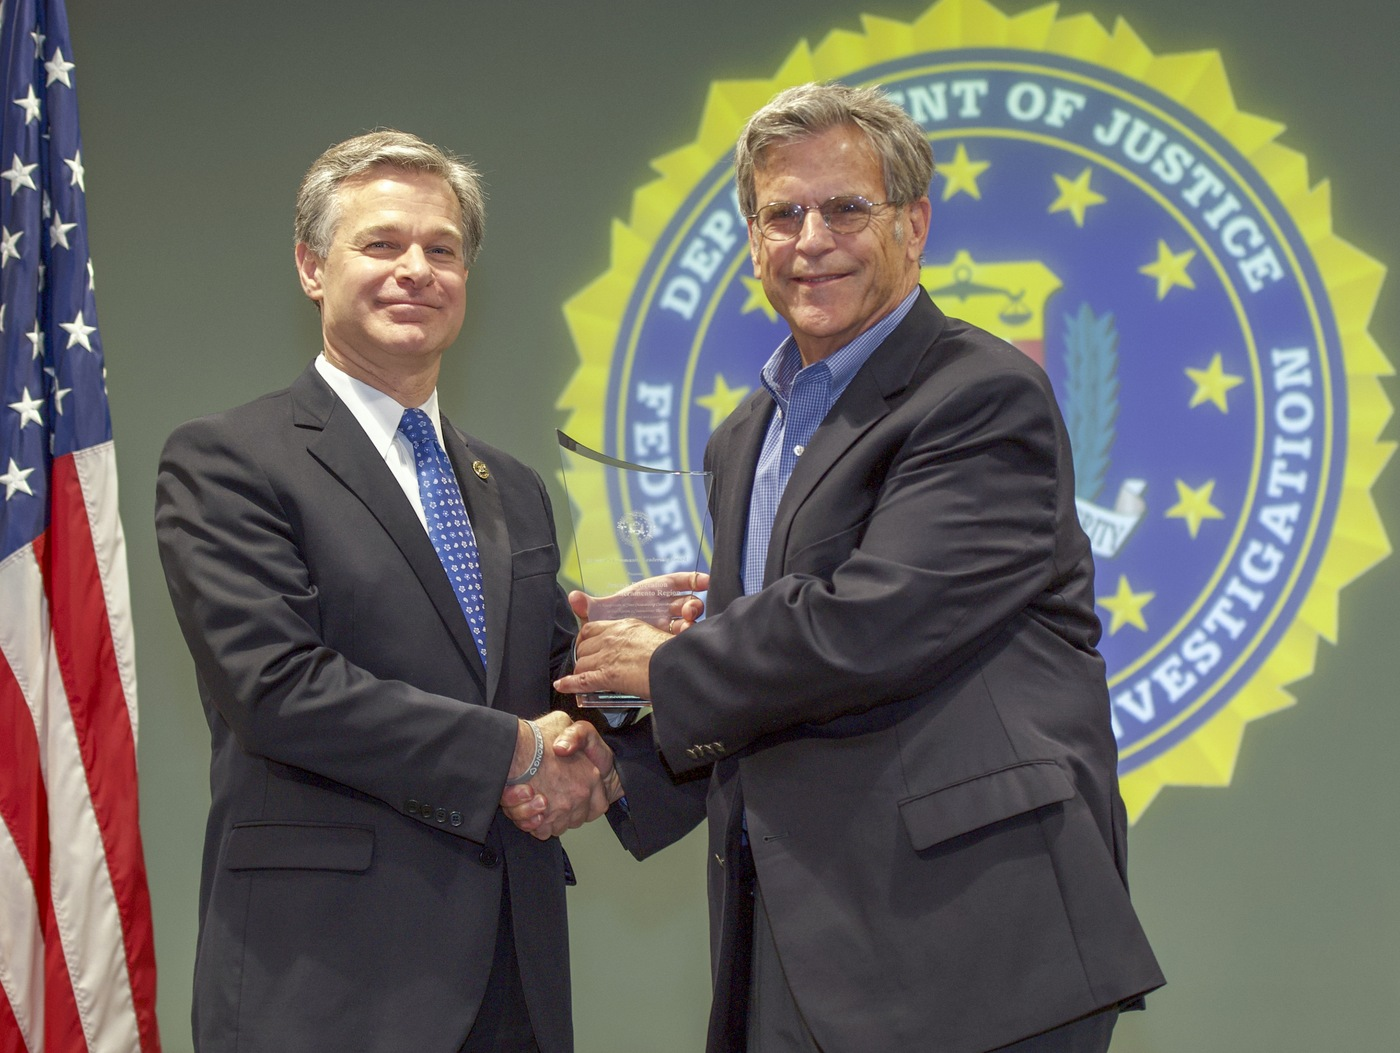 FBI Director Christopher Wray presents Sacramento Division recipient the Jewish Federation of the Sacramento Region (represented by Bruce Pomer) with the Director's Community Leadership Award (DCLA) at a ceremony at FBI Headquarters on May 3, 2019.